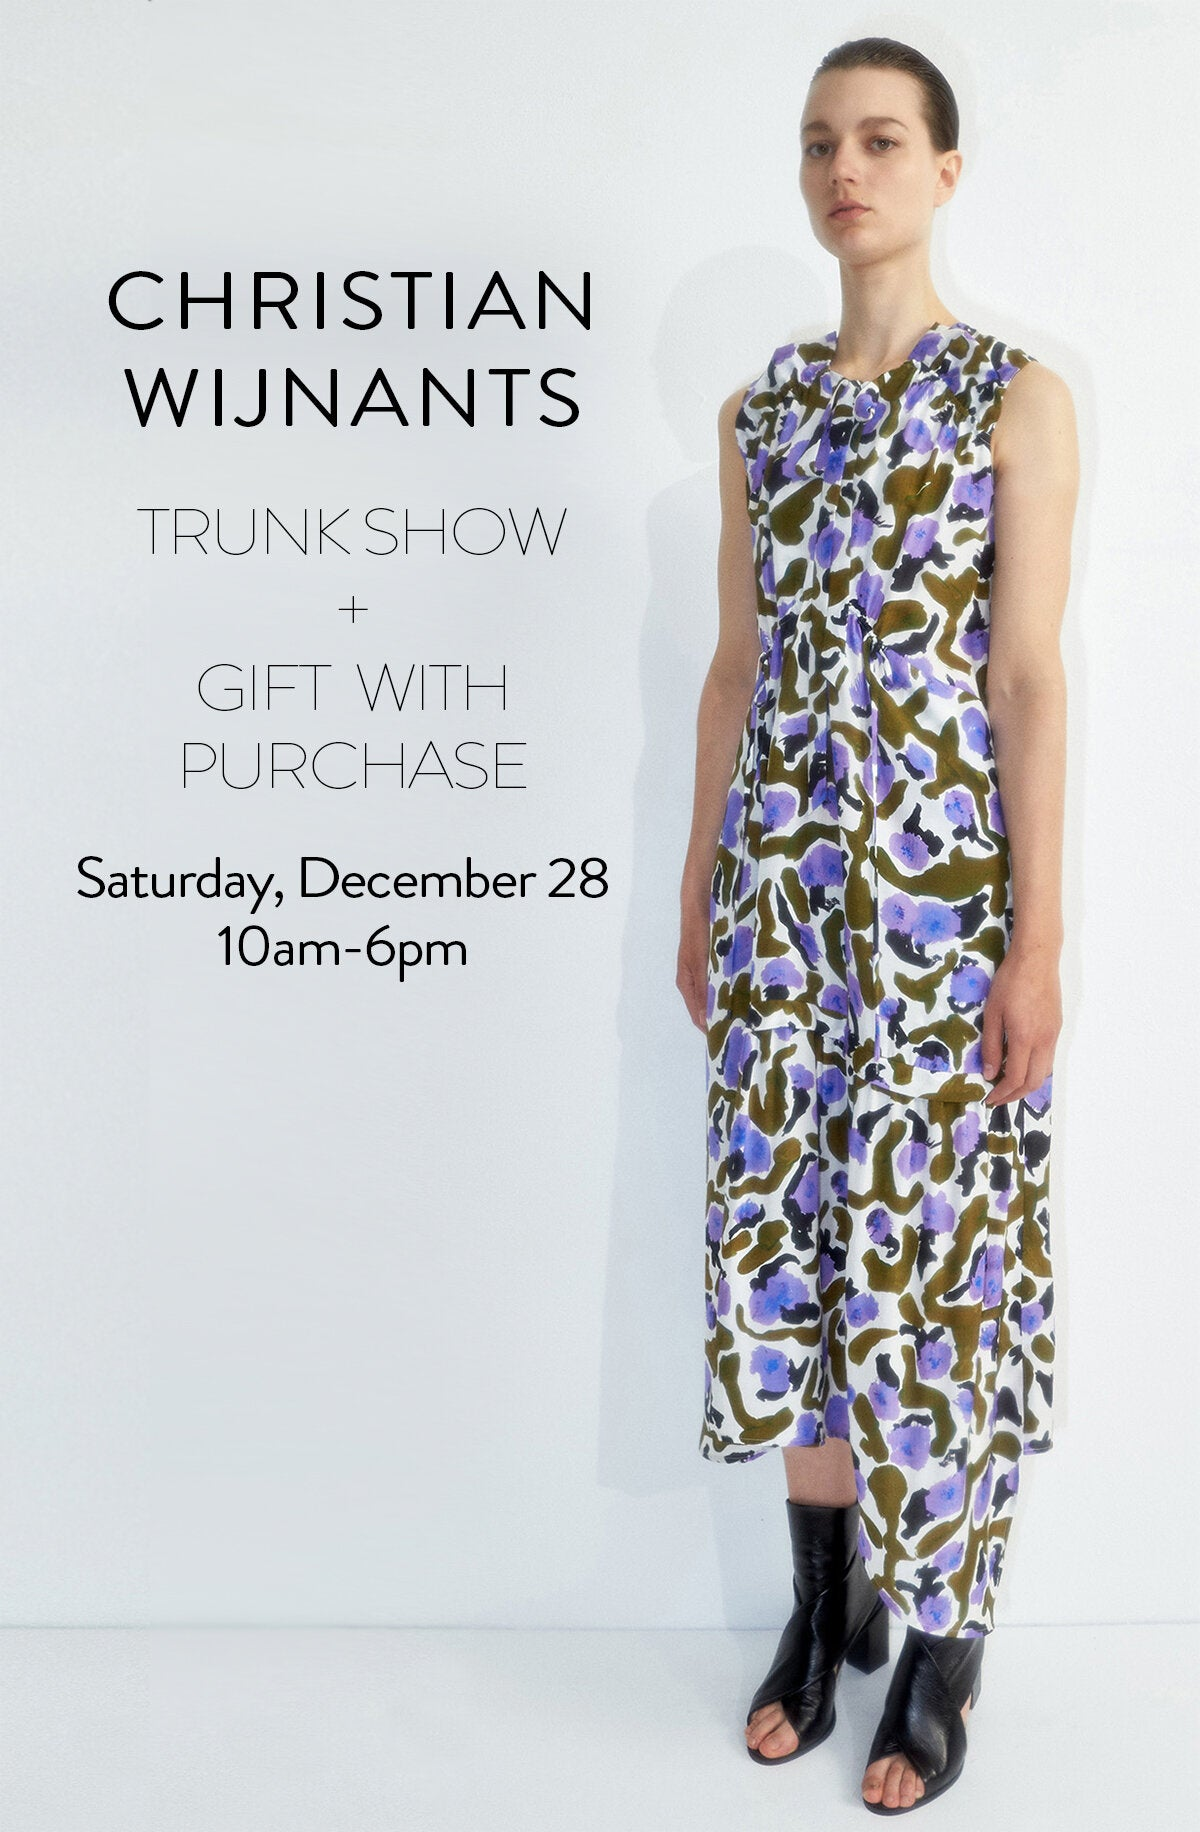 CHRISTIAN WIJNANTS TRUNK SHOW